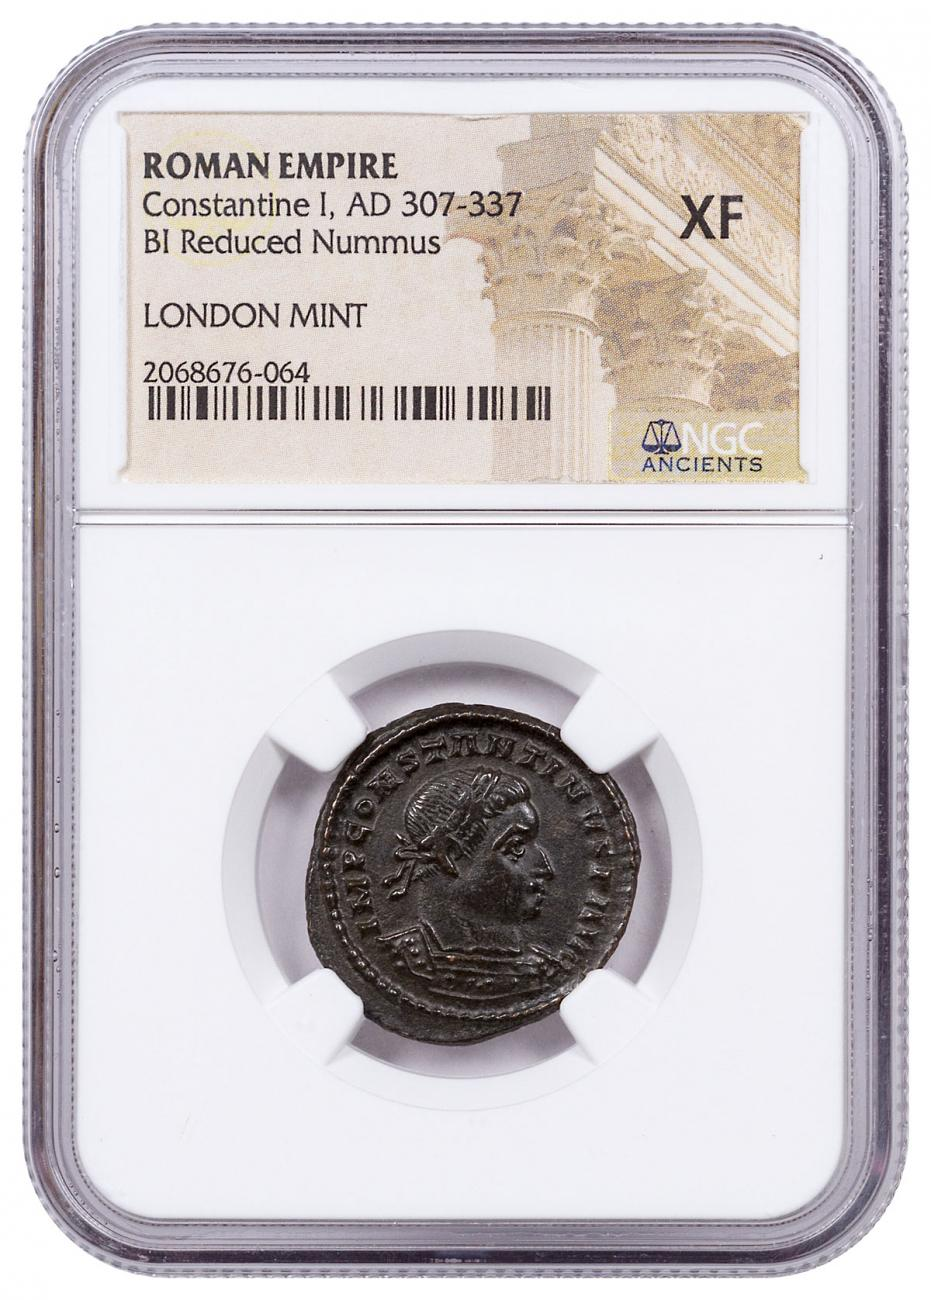 Roman Empire, Billon Nummus of Constantine I (AD 307-337) - London Mint - NGC XF